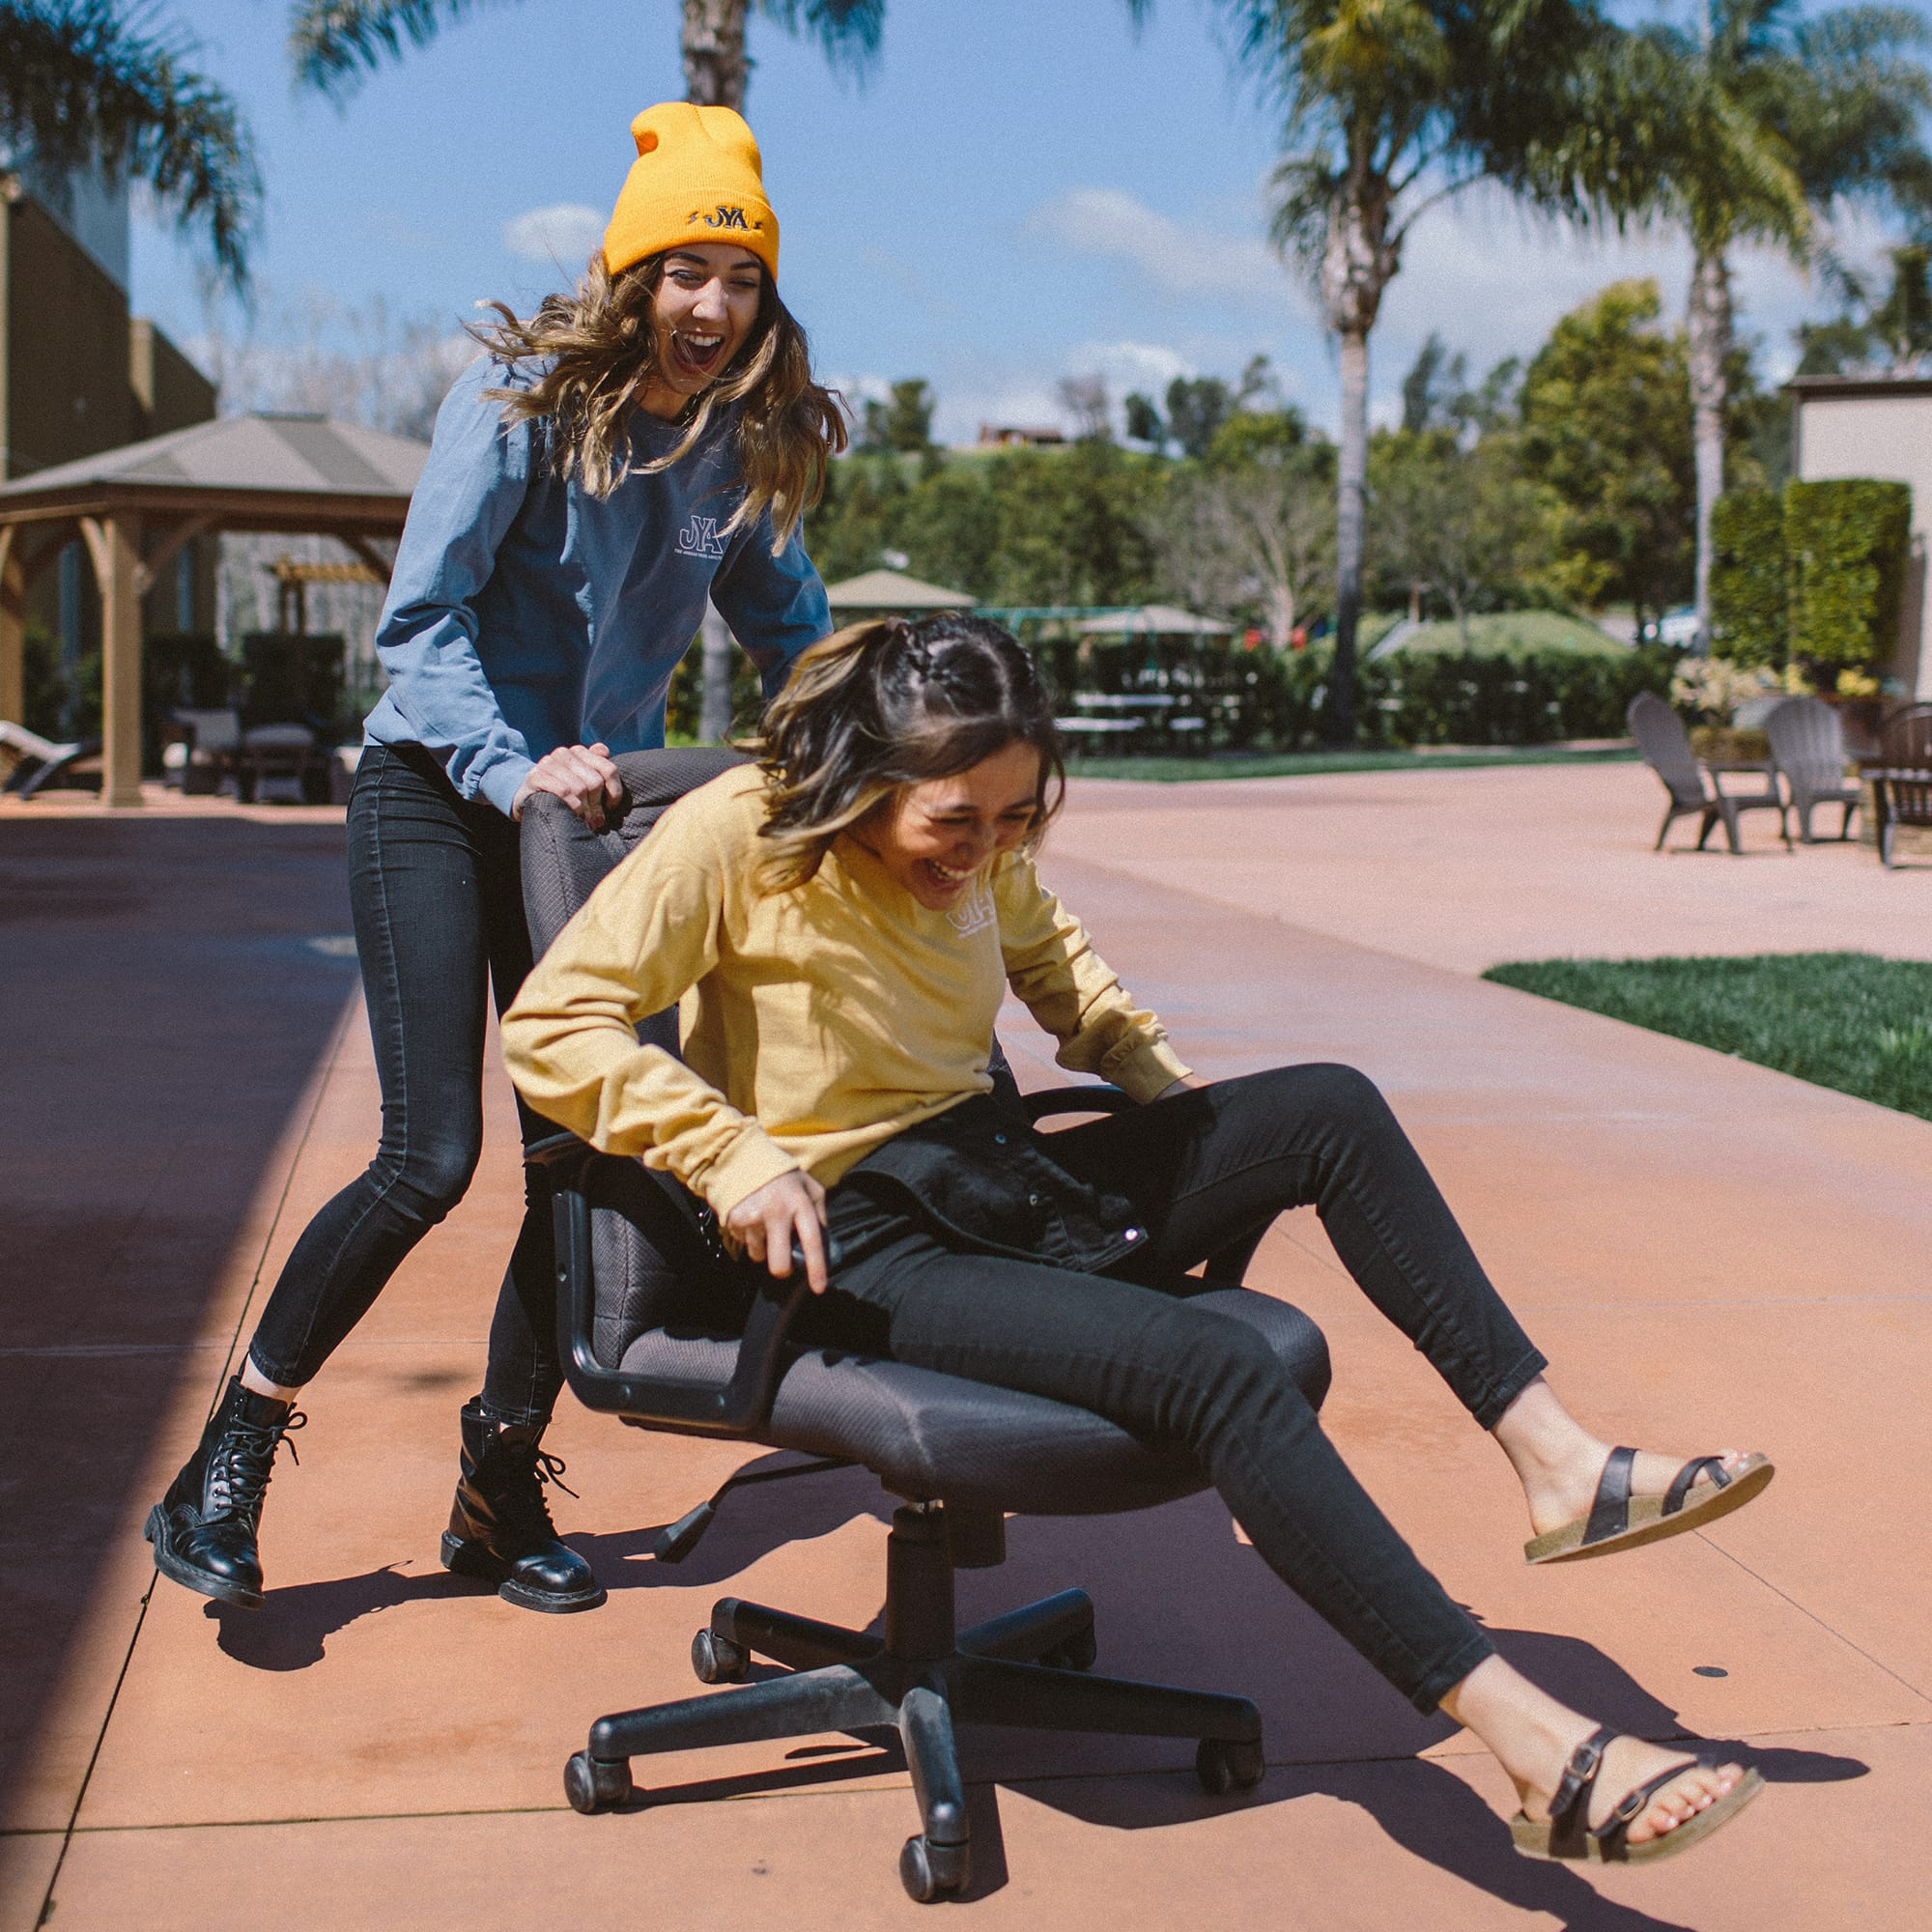 Woman pushing another woman on a desk chair having fun